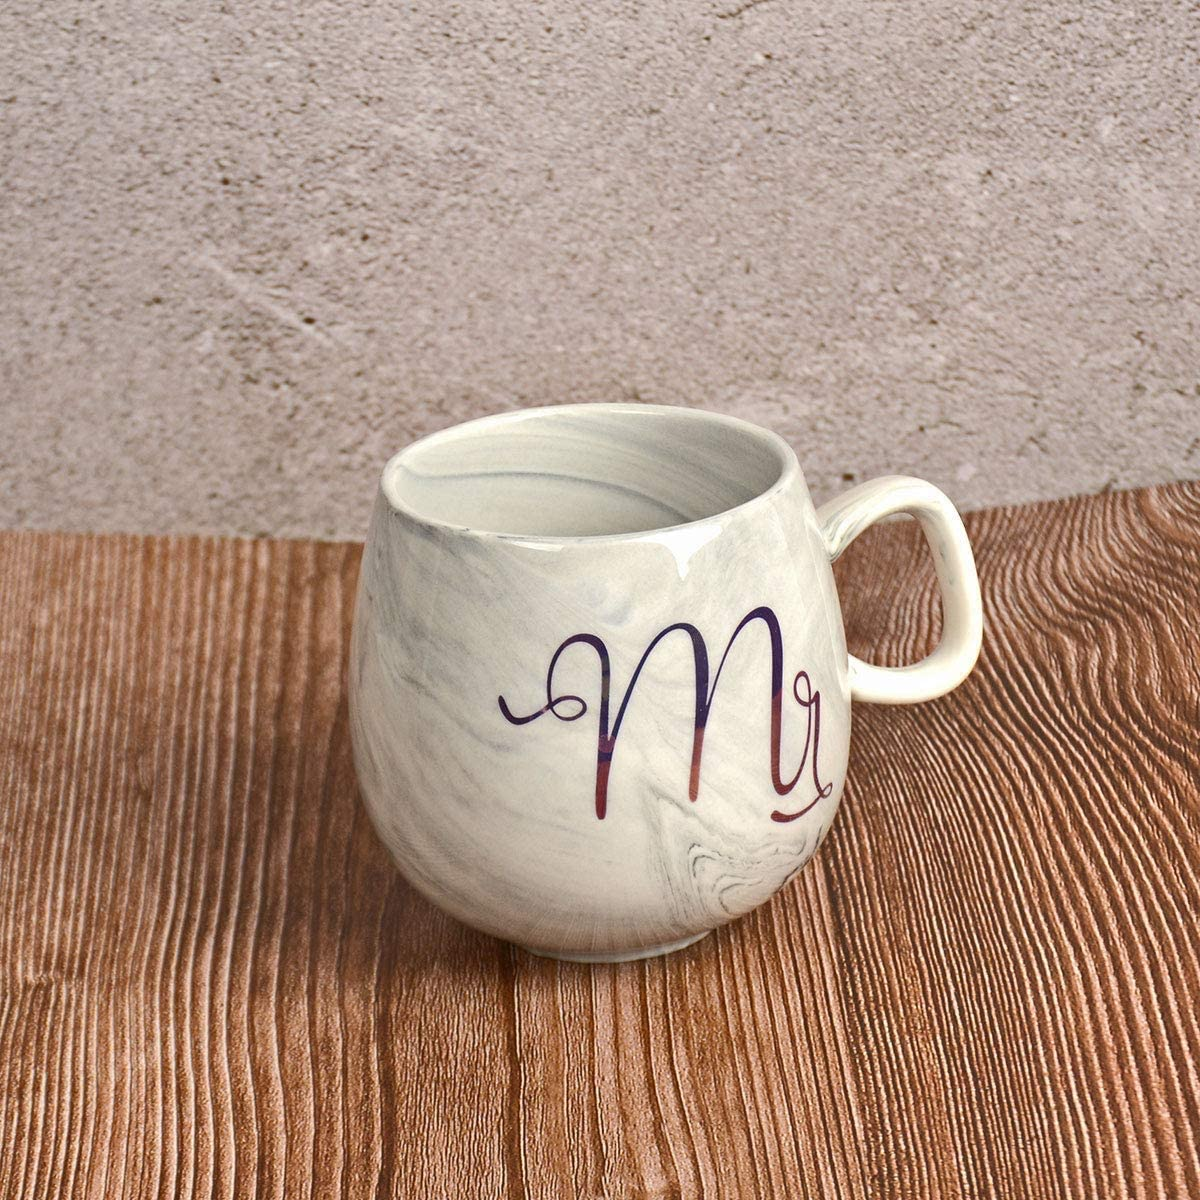 Tougo Set of 2 Mr and Mrs Coffee Mugs,Ceramic Coffee Cup with Gold /& Marble Design,Unique Gift for Him Her for Parents for Valentines Day for Engaged Married Couples